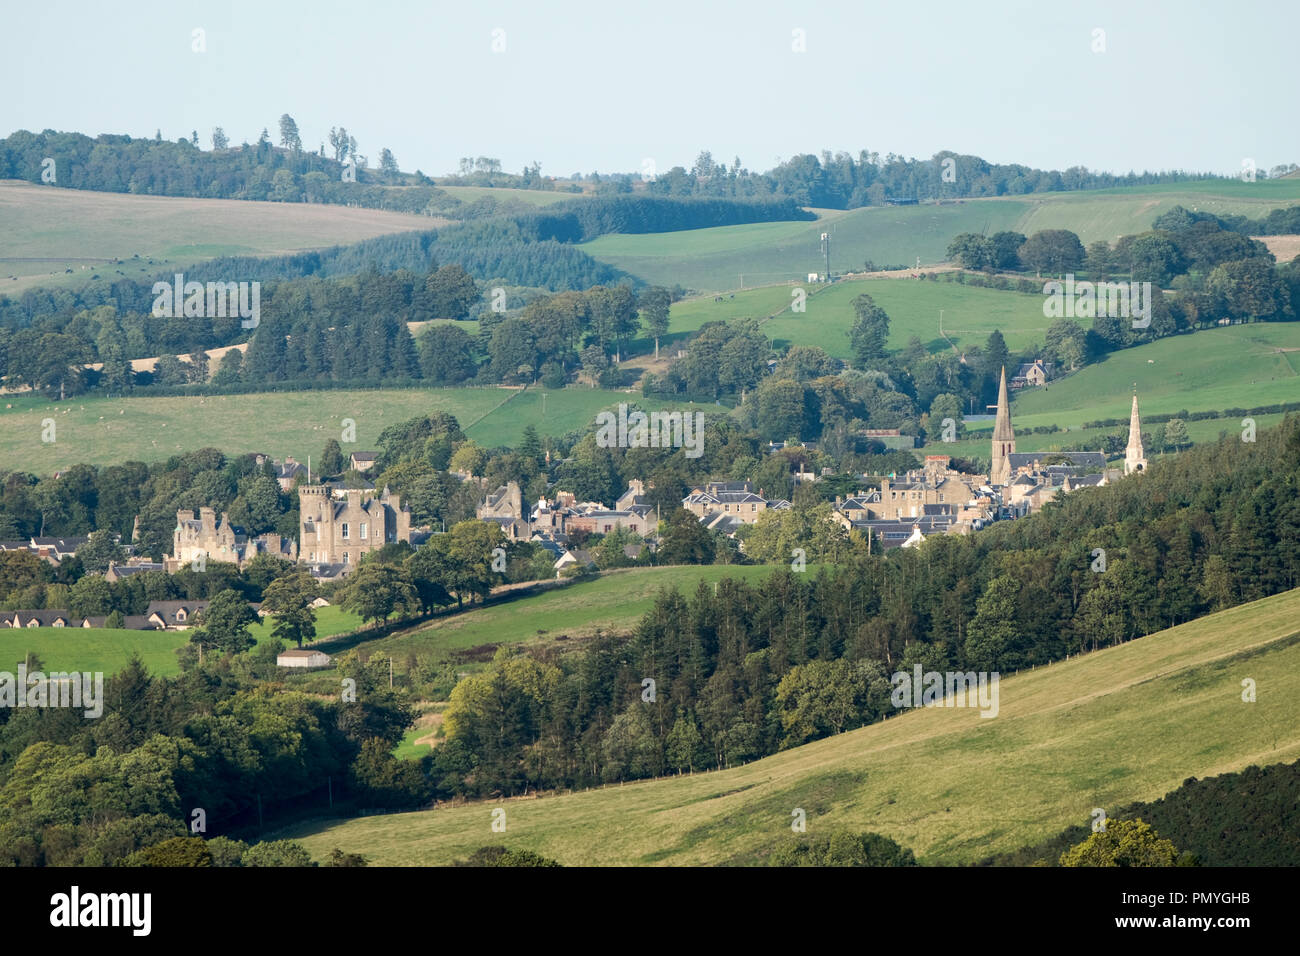 The town Selkirk in the Scottish Borders, Scotland. - Stock Image